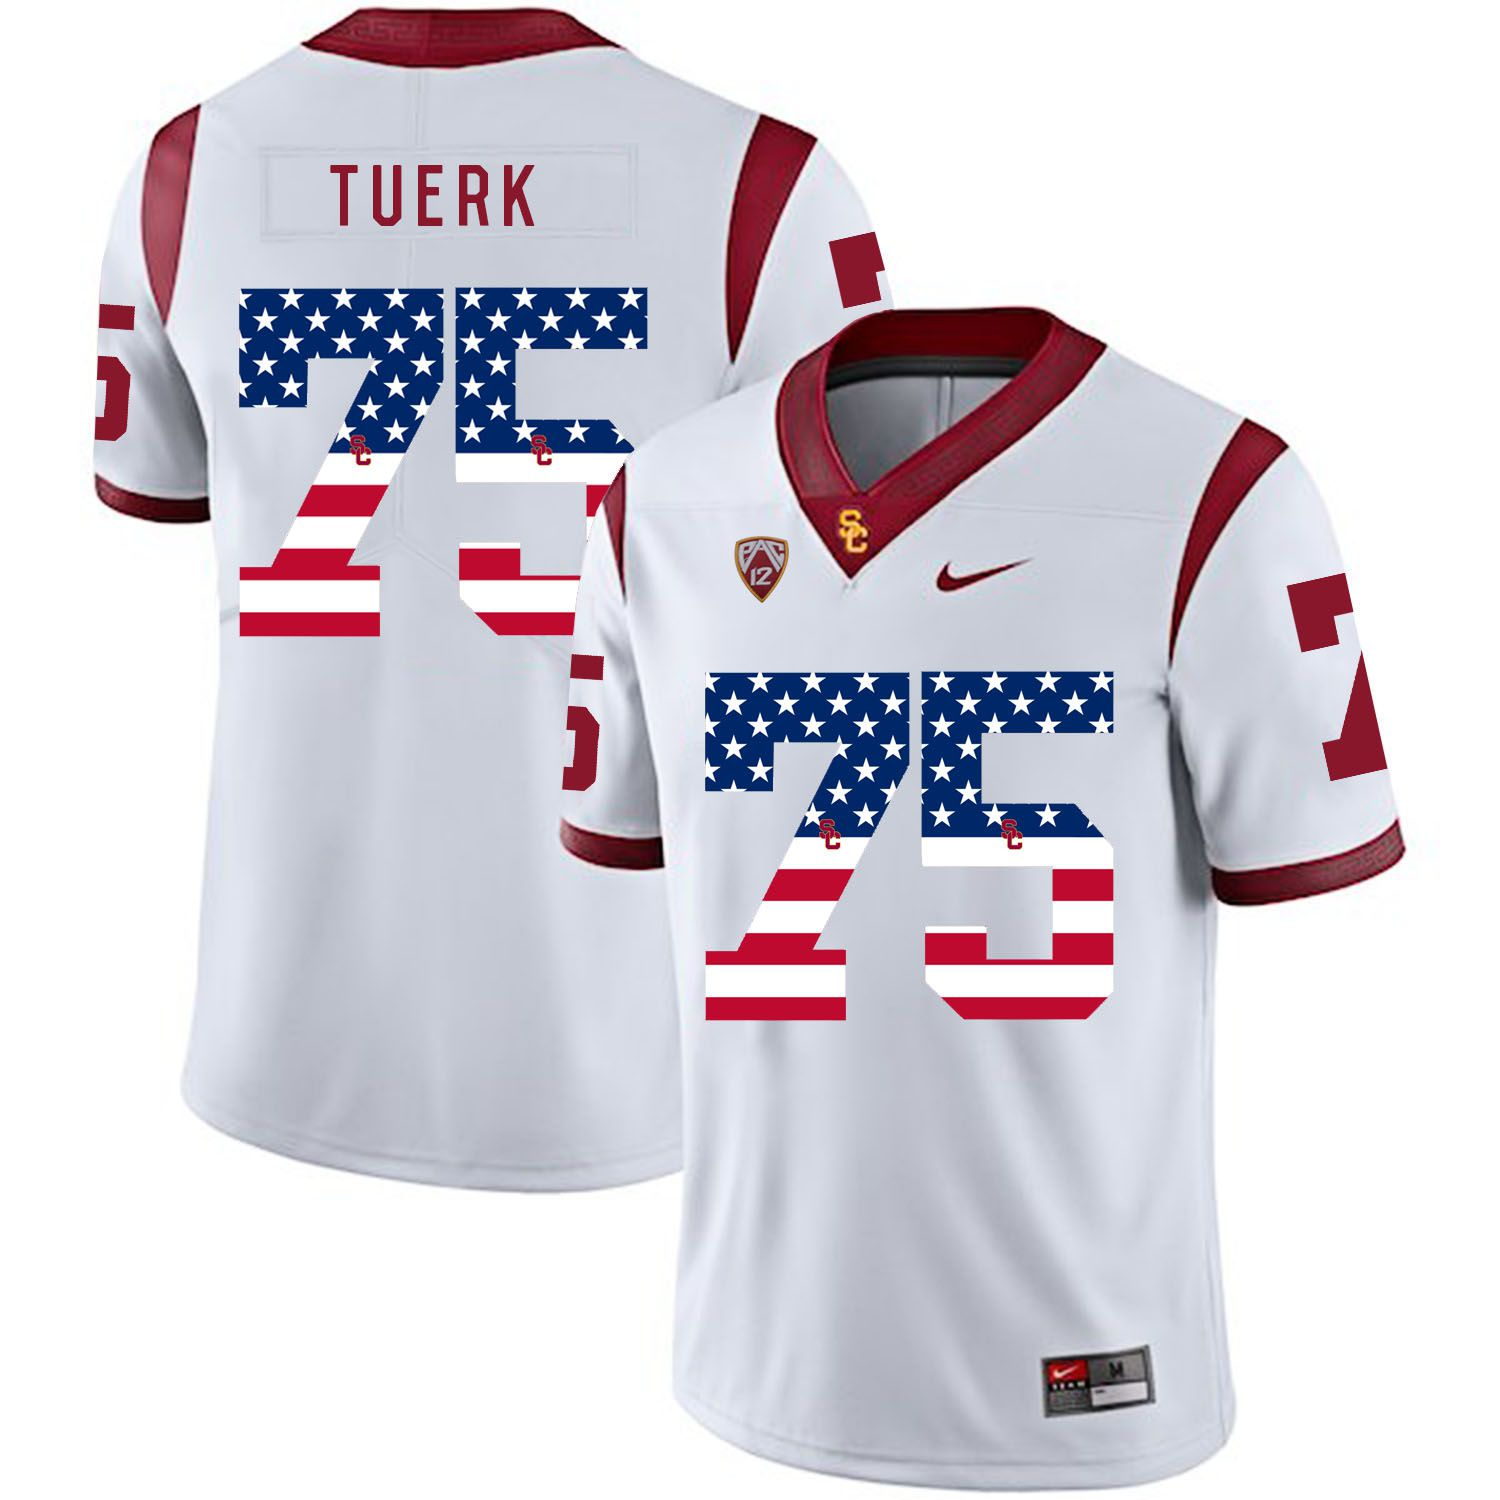 Men USC Trojans 75 Tuerk White Flag Customized NCAA Jerseys